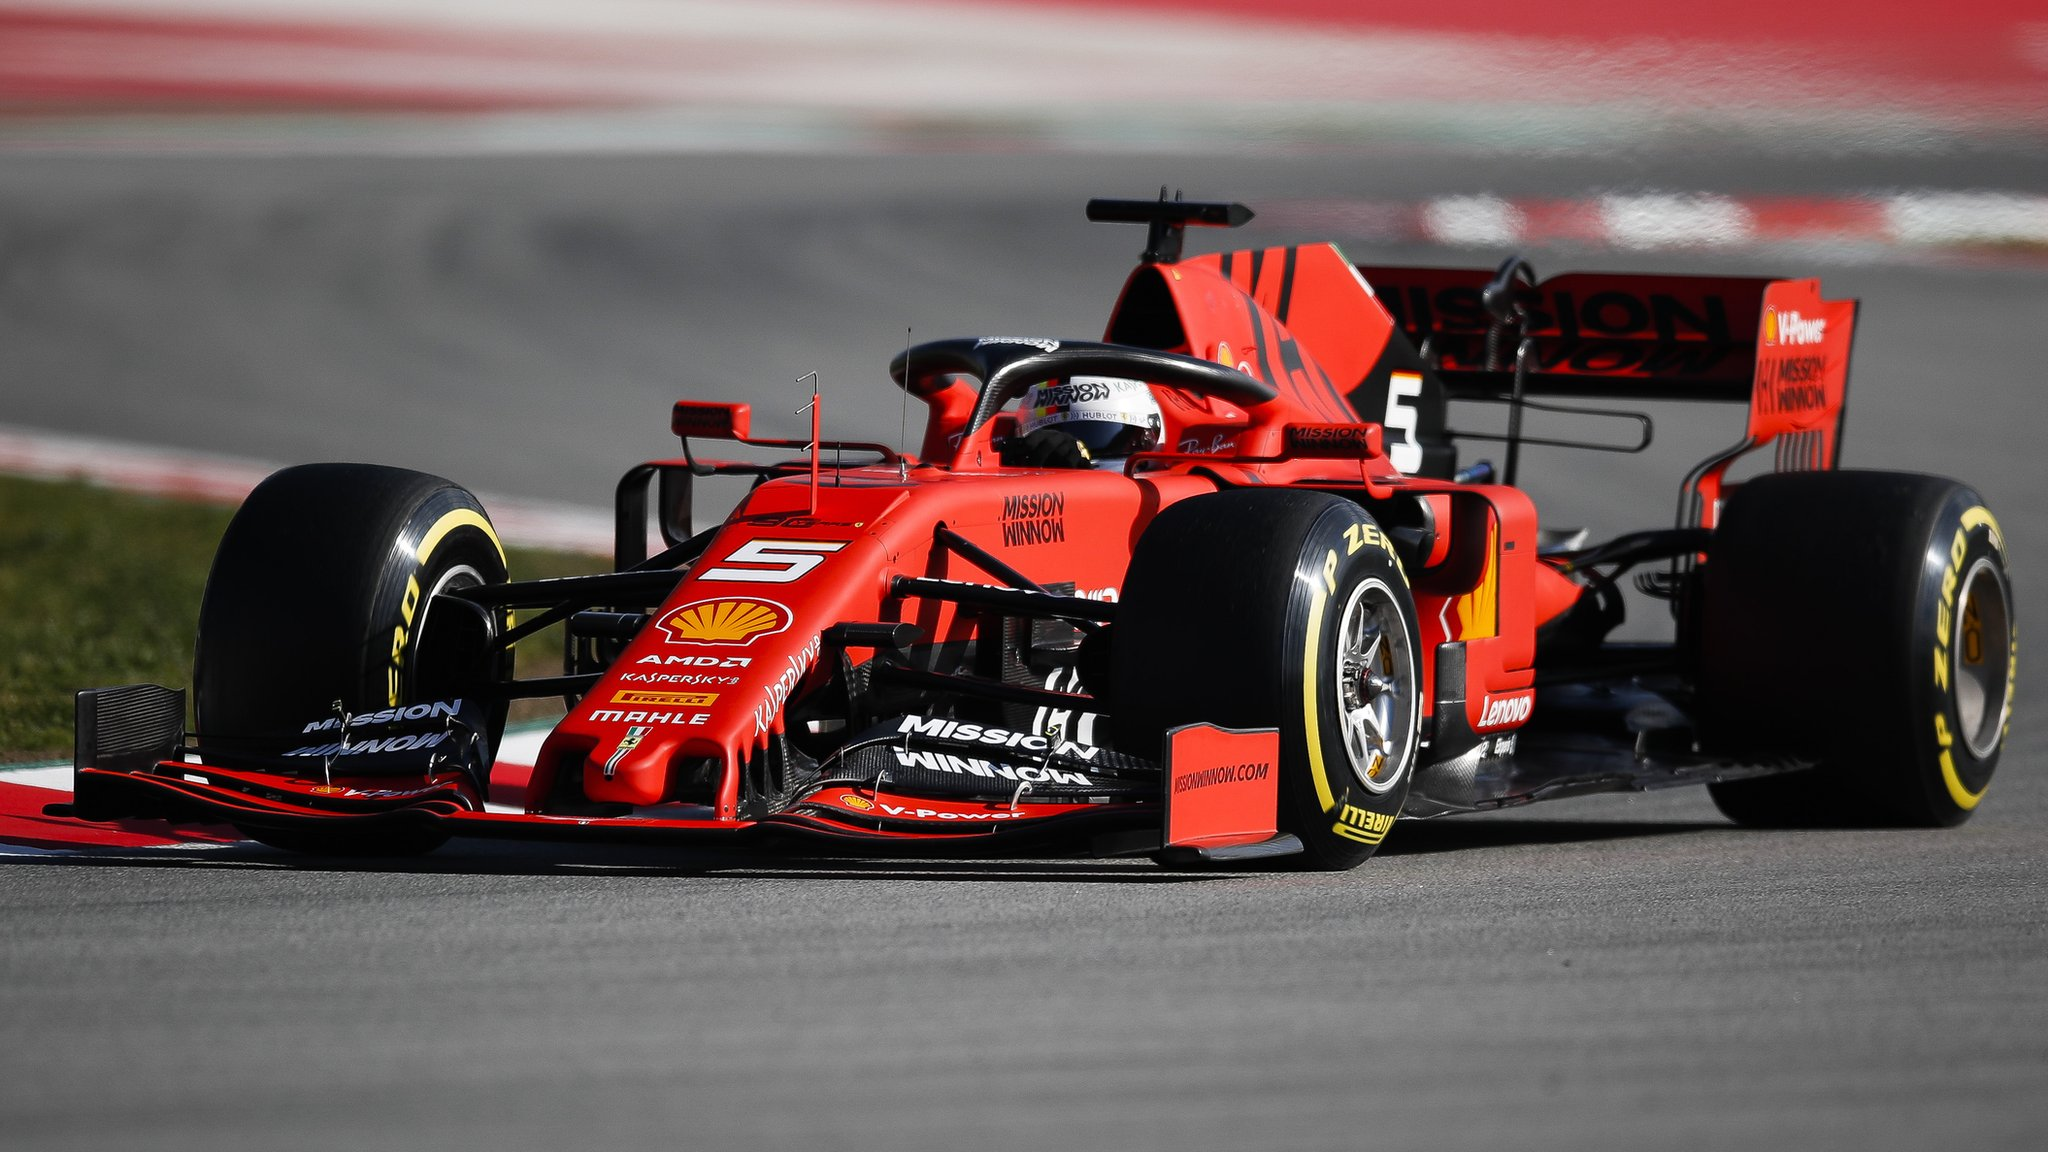 Williams in turmoil as Vettel fastest on first day of testing